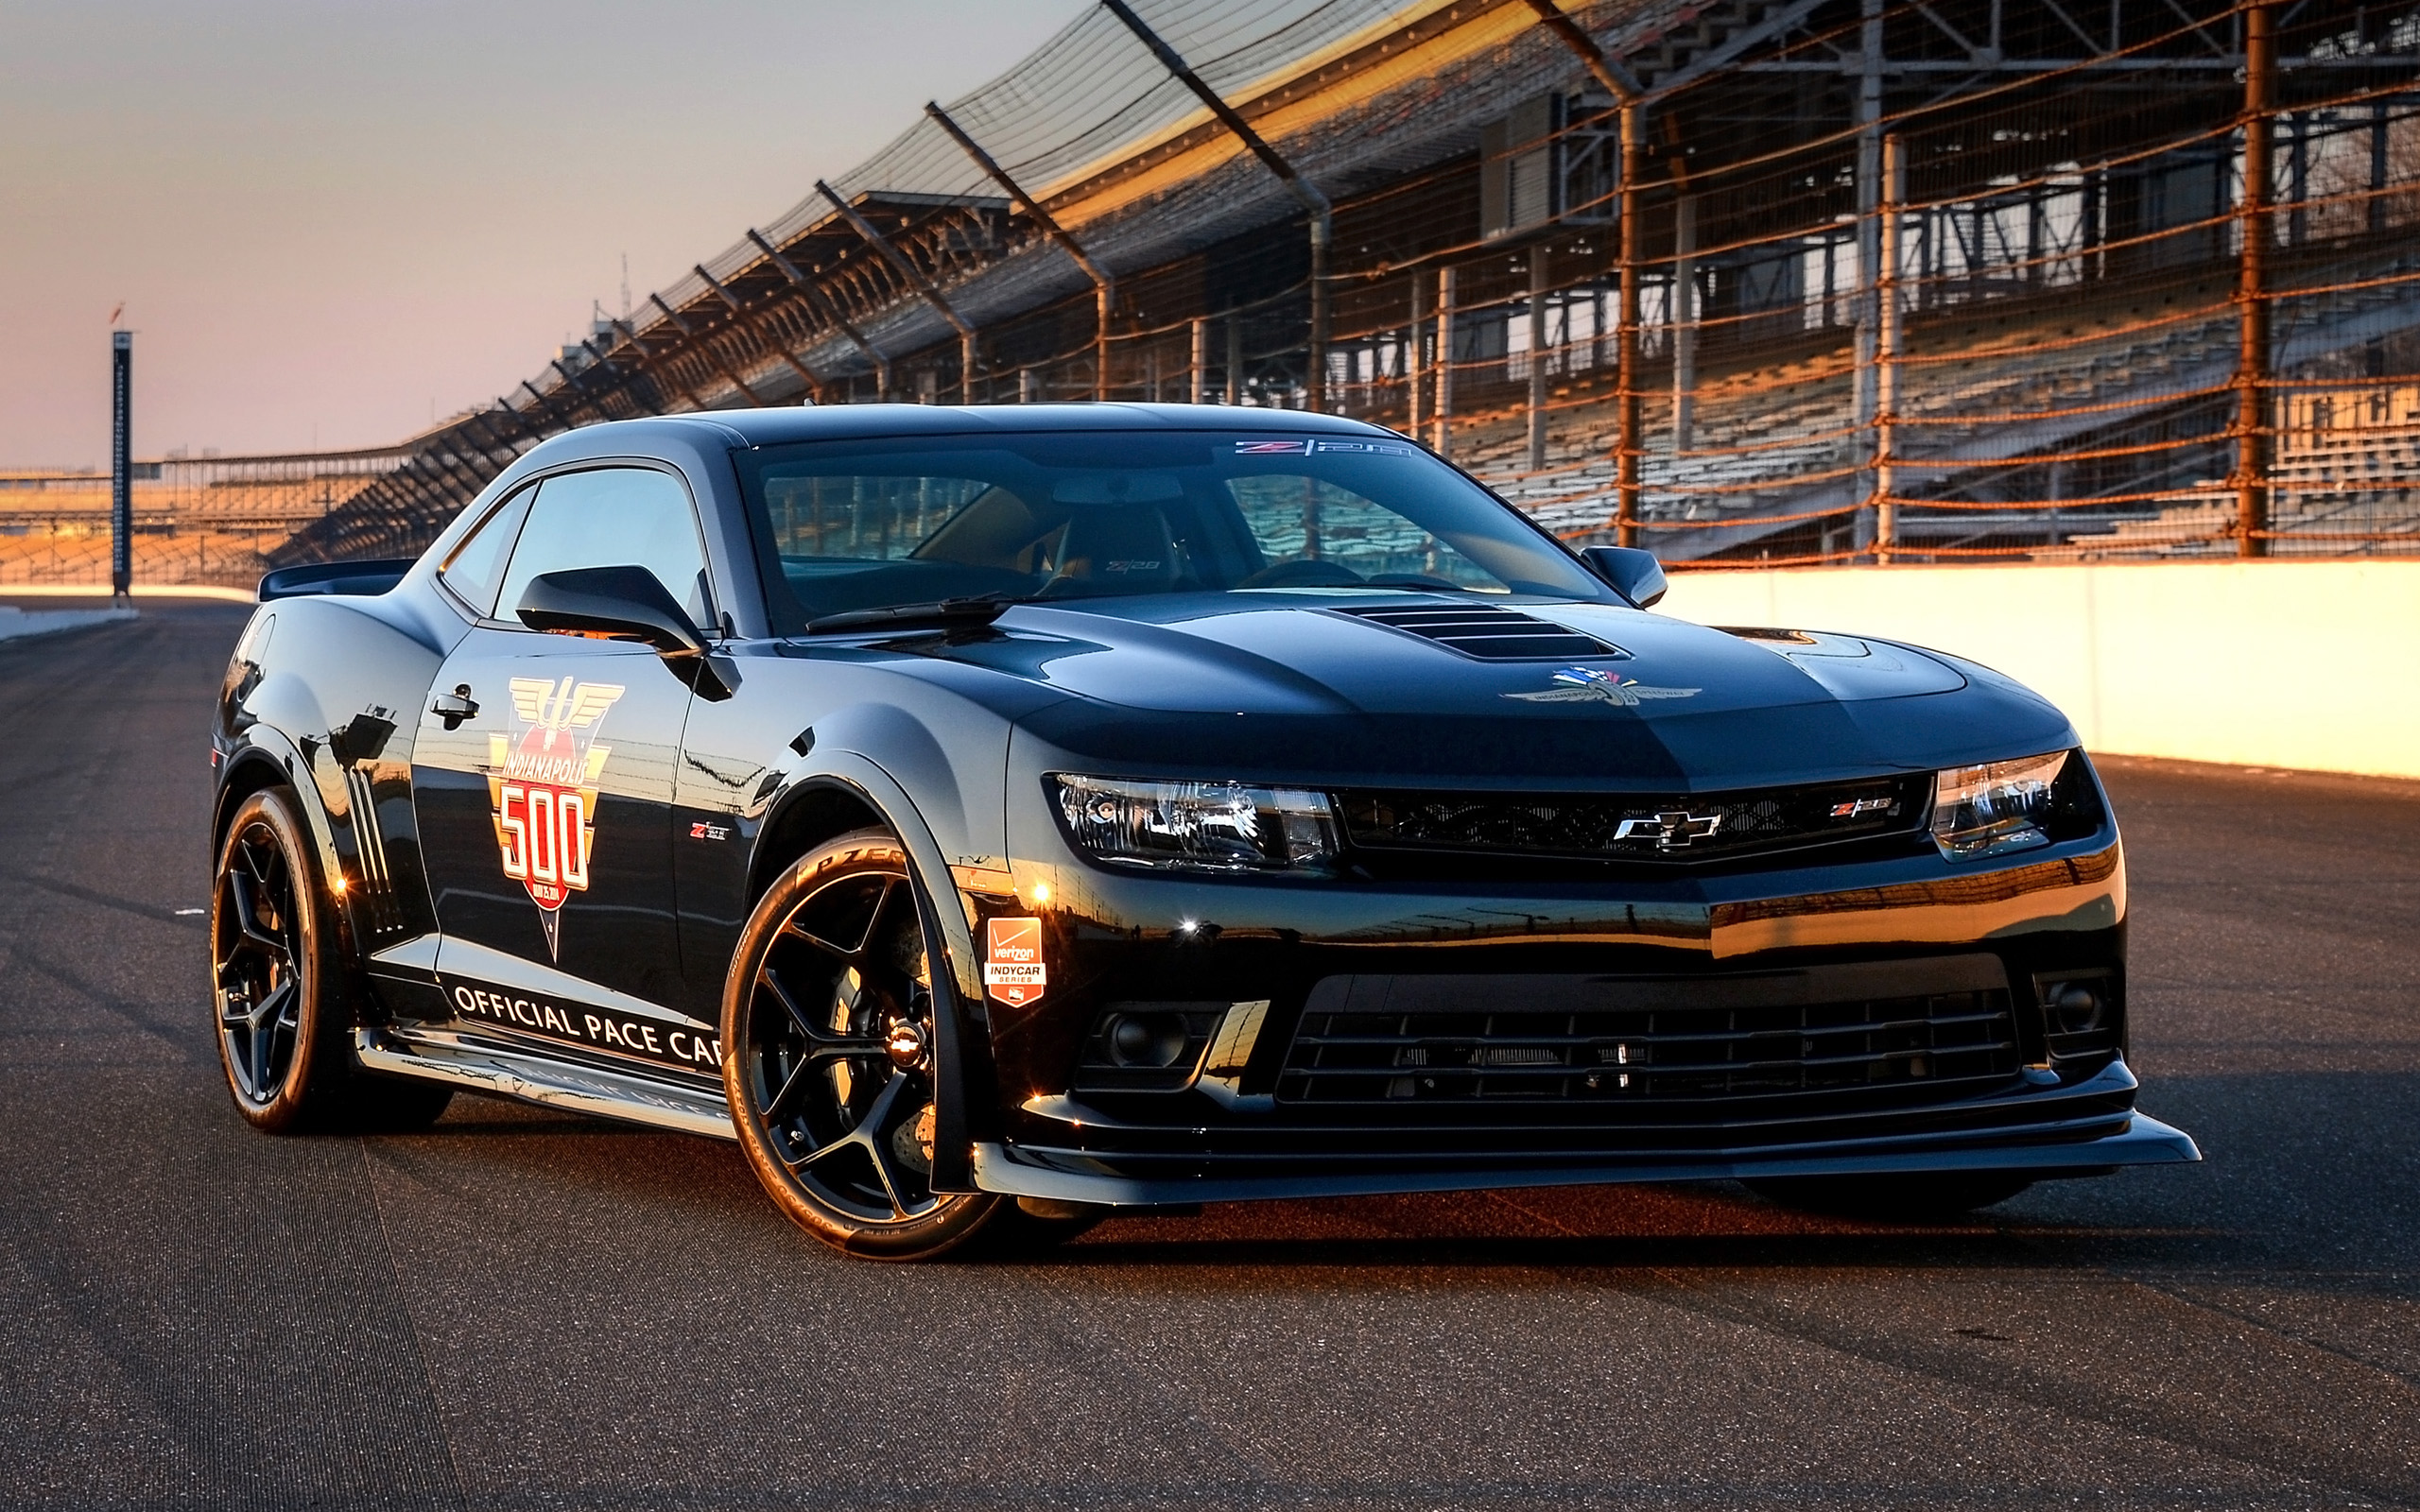 2014 Chevrolet Camaro Z28 Indy 500 Pace Car Wallpaper HD Car 2560x1600